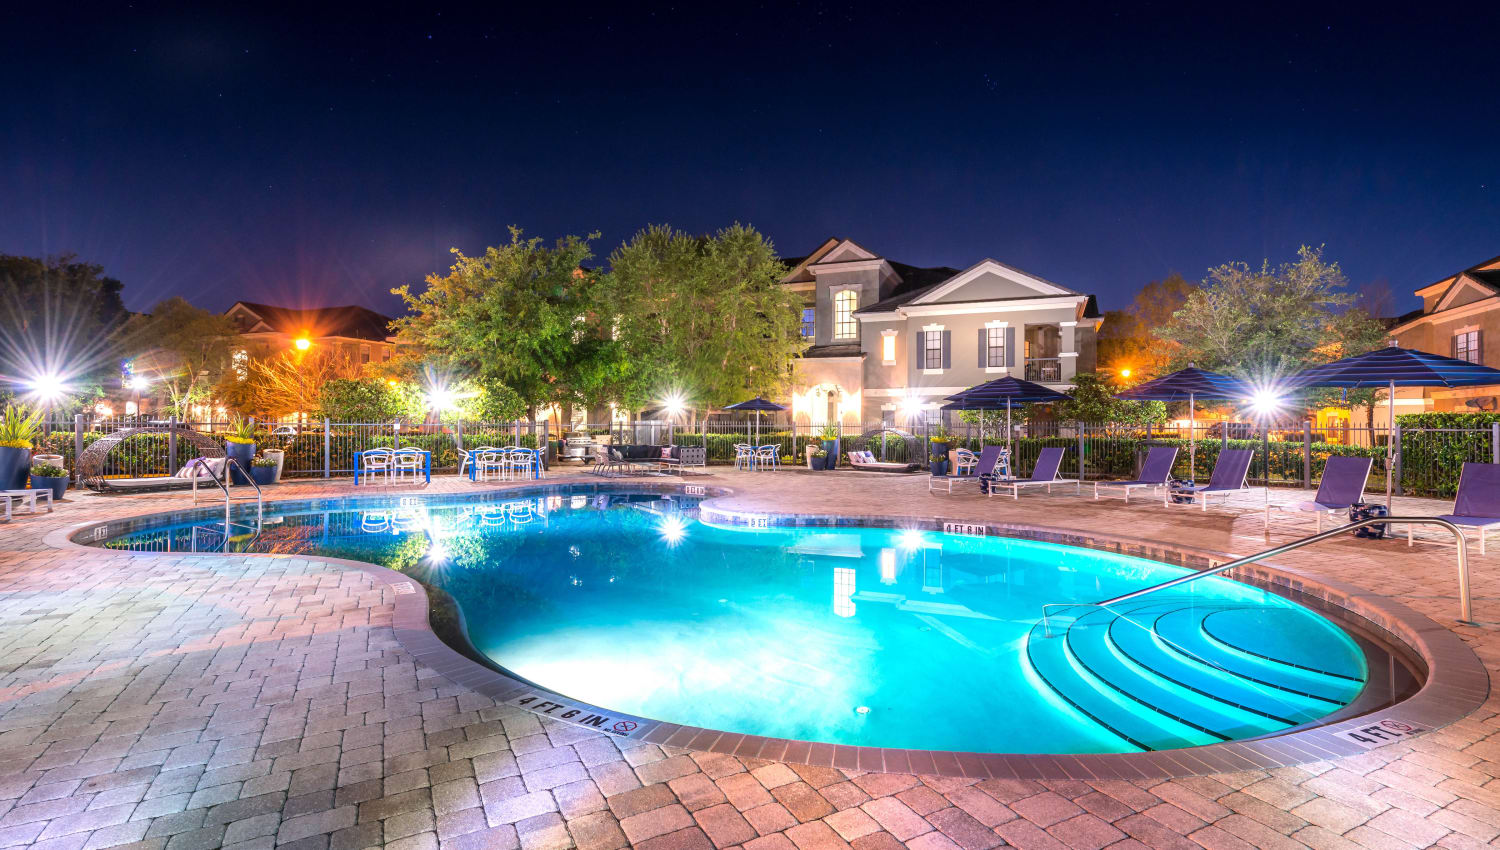 Underwater illumination at the swimming pool in the evening at Mirador & Stovall at River City in Jacksonville, Florida